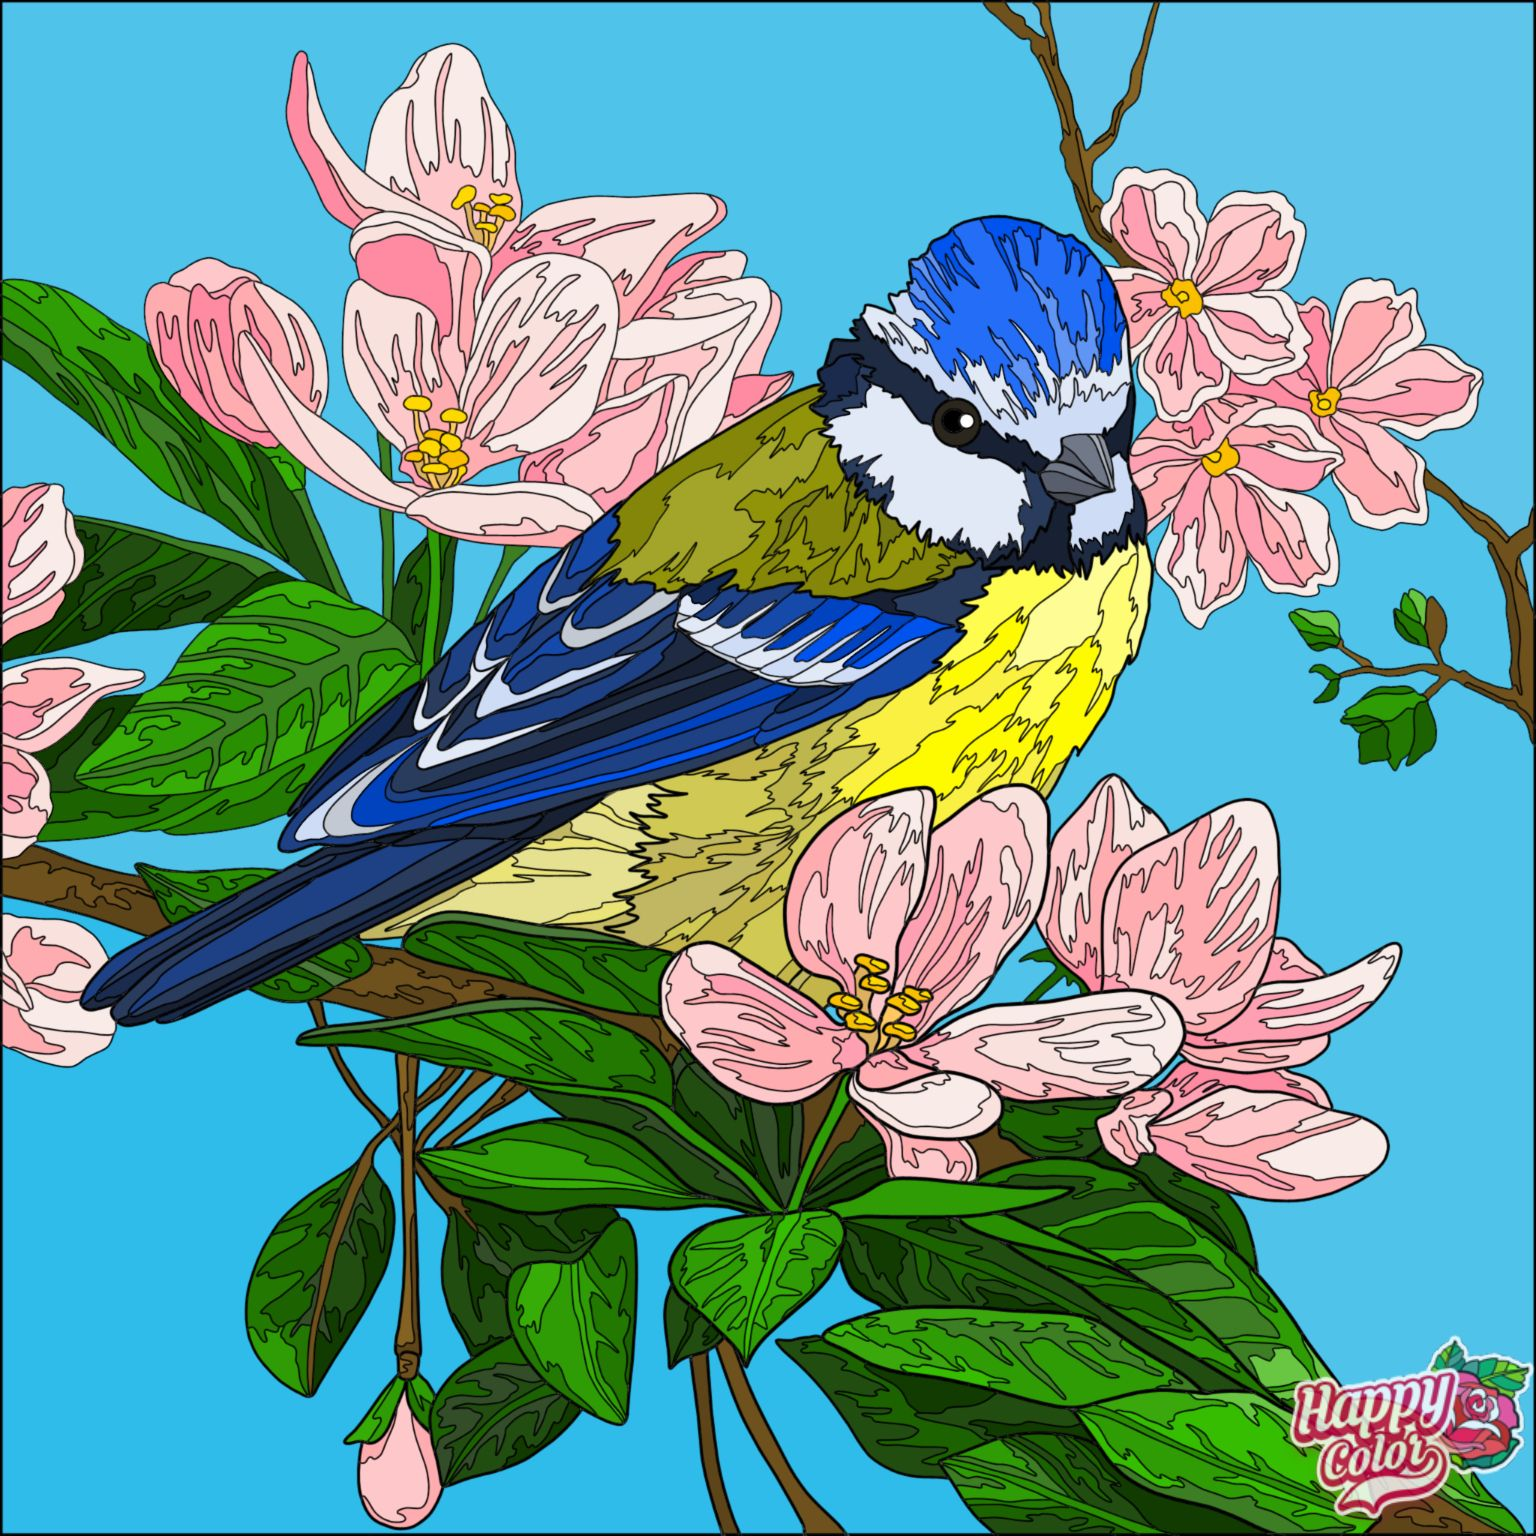 Pin By Gina Ball On Digital Colorscapes Nature Art Painting Bird Drawings Colorful Art